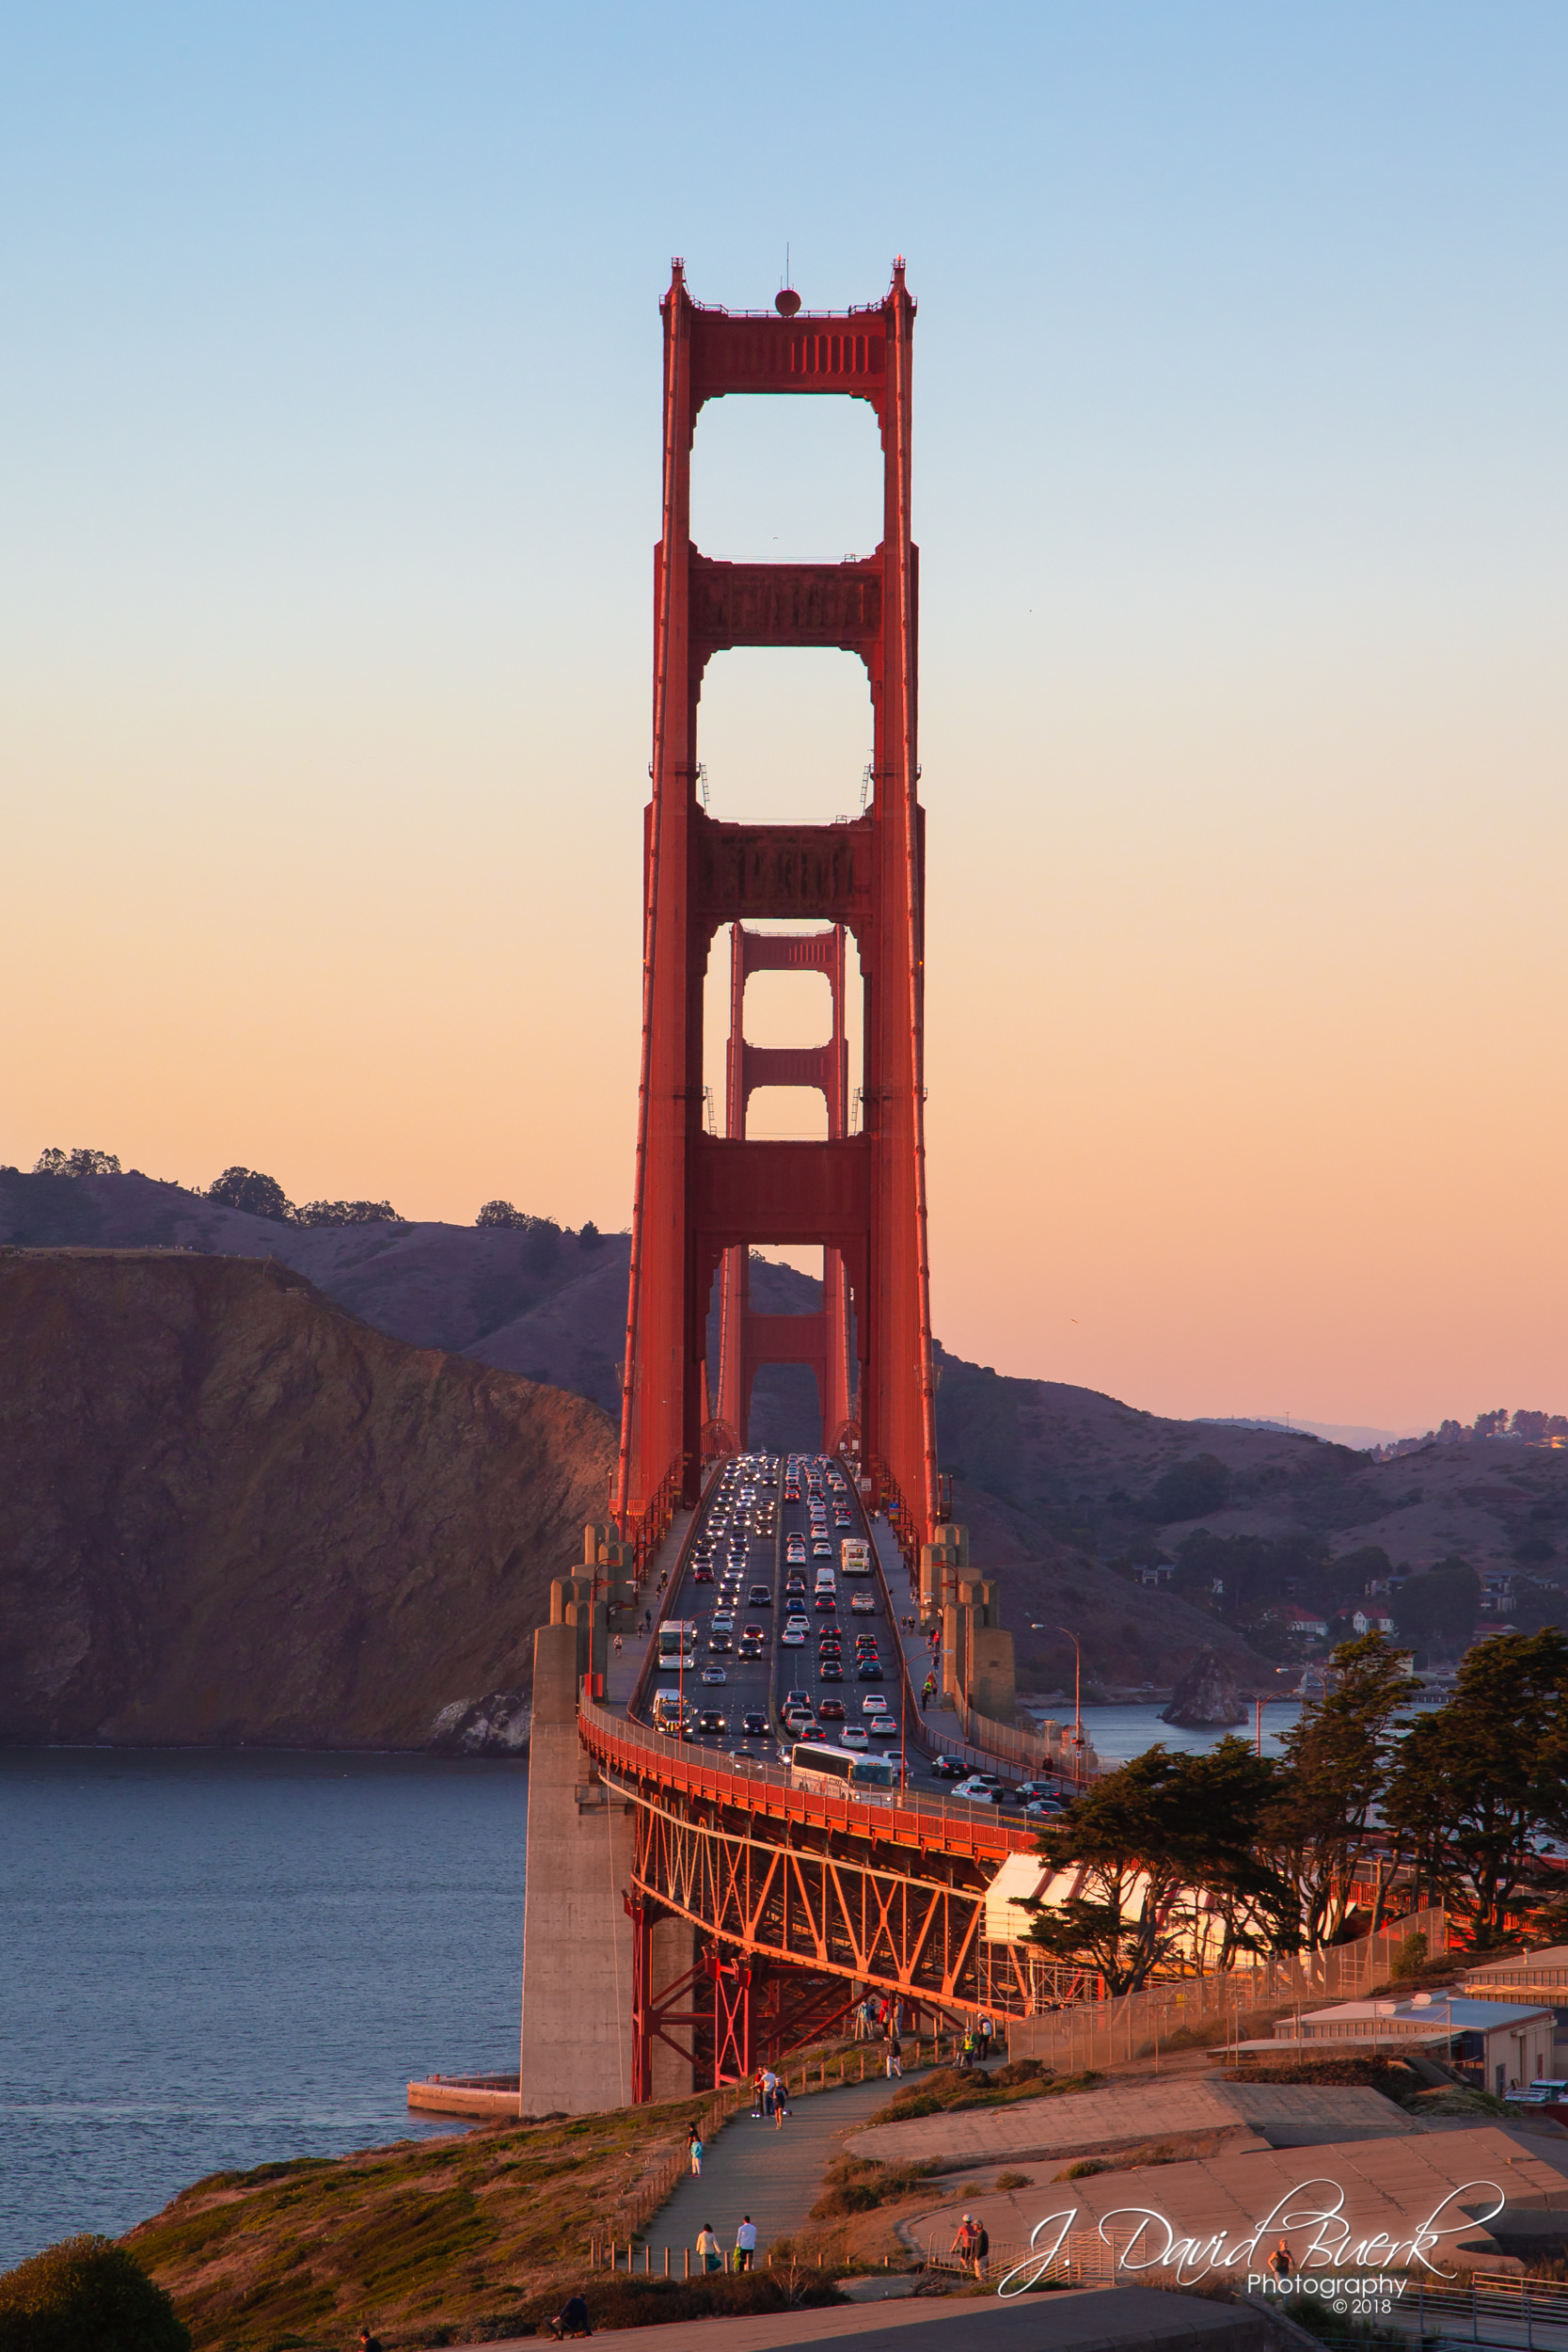 San Francisco's iconic Golden Gate Bridge at sunset.